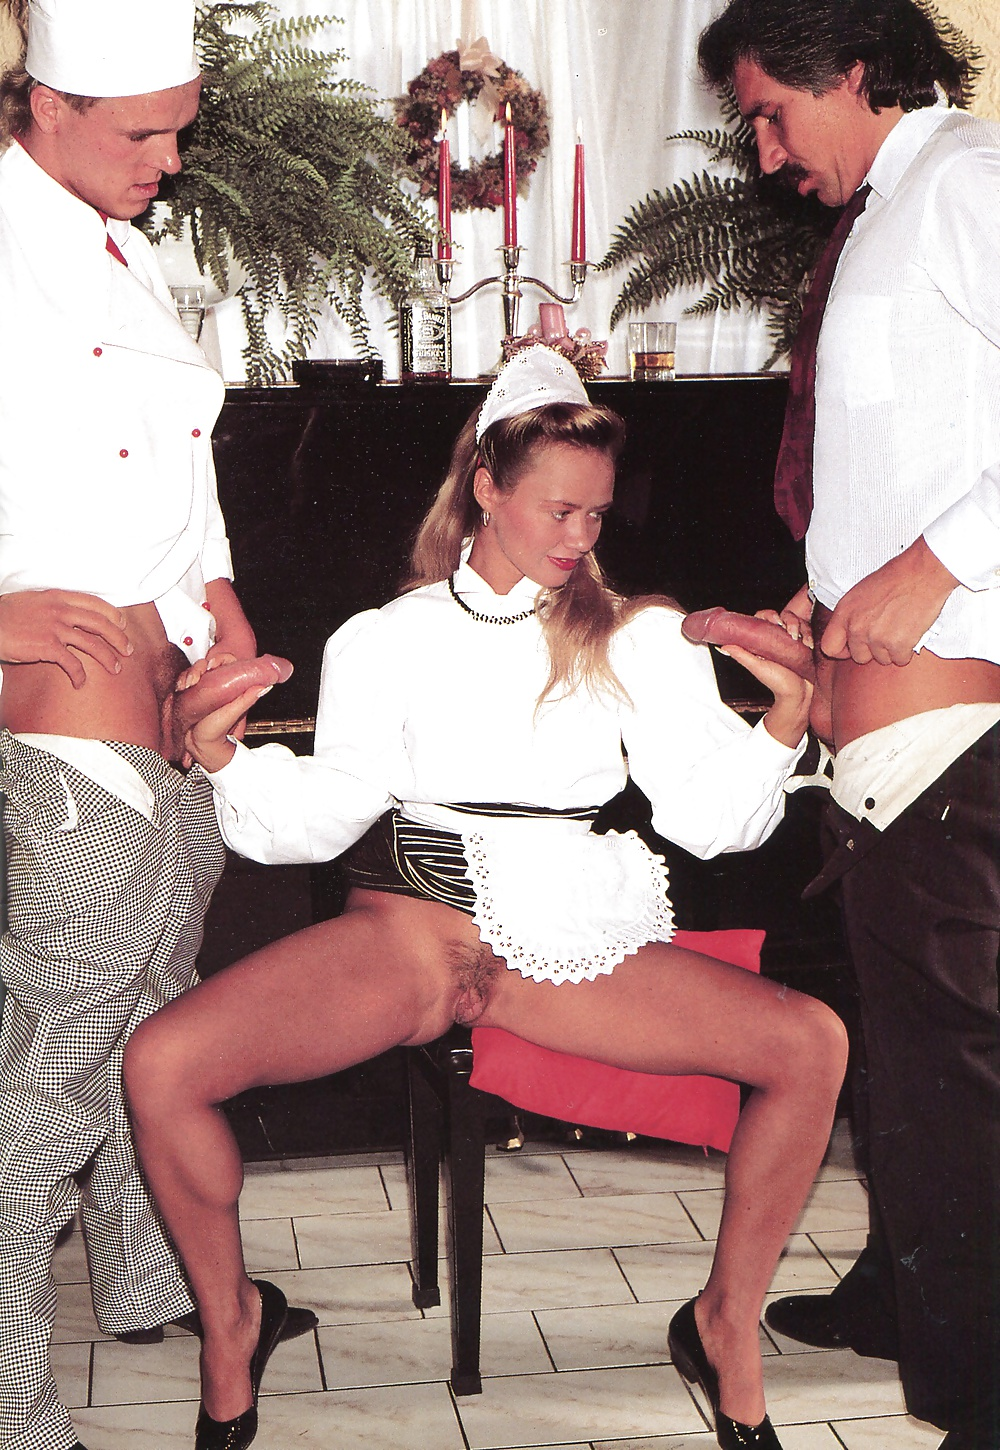 Penelope maid sex video vintage, photos of naked public sex